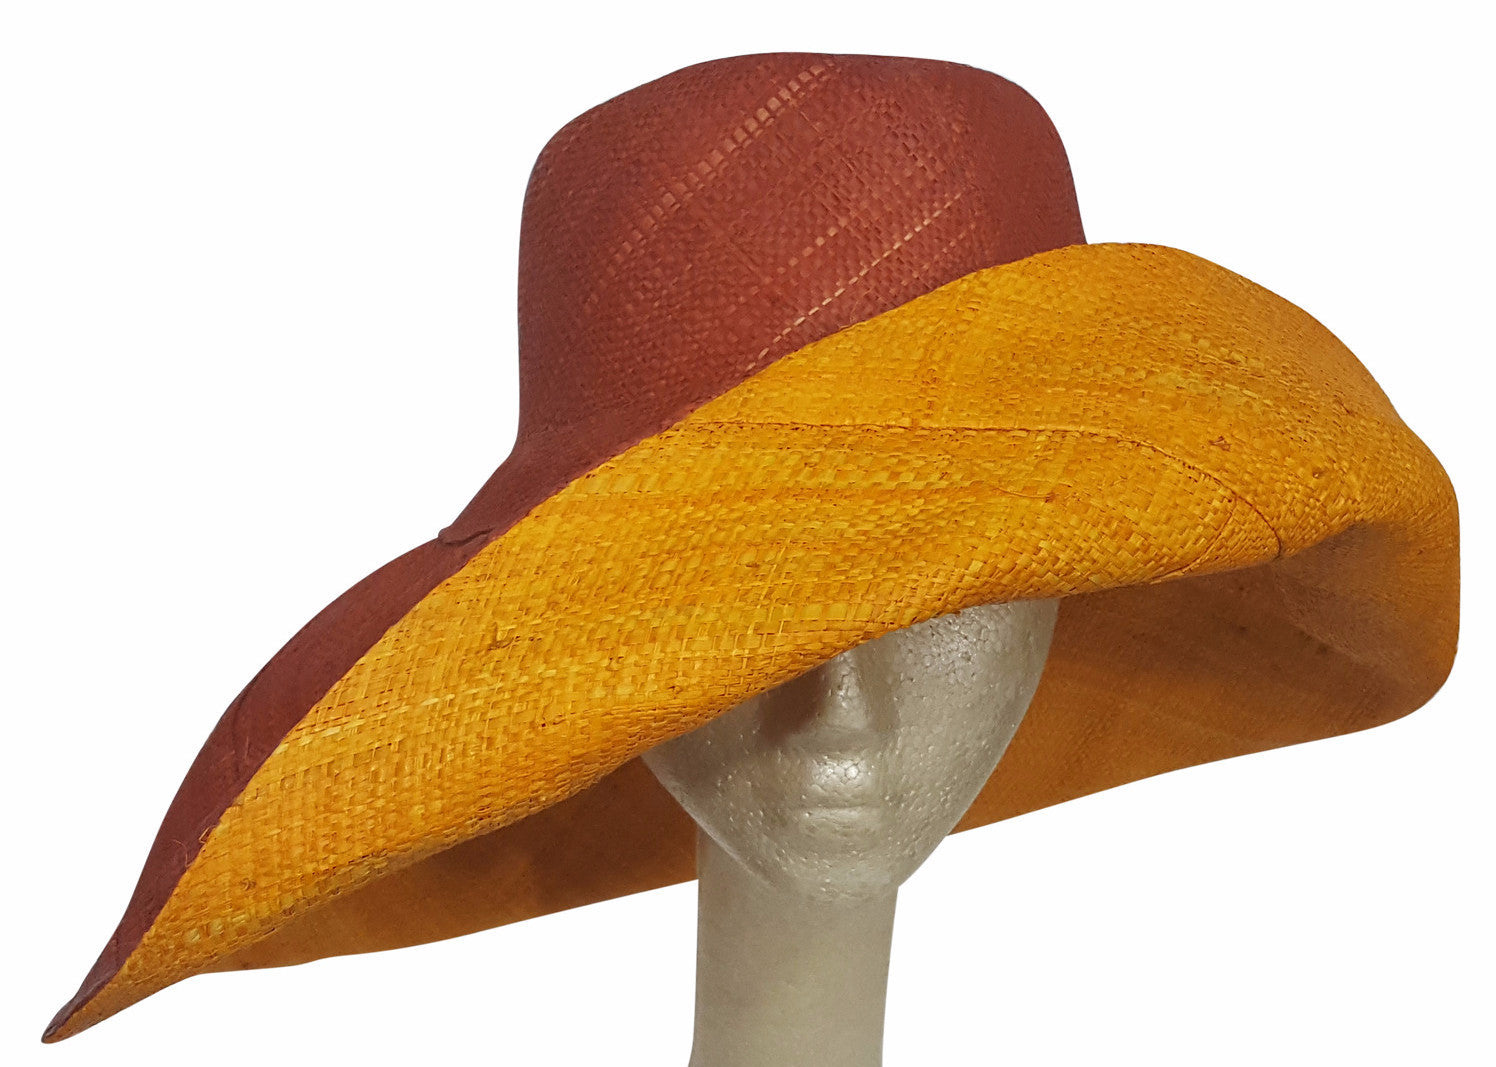 Abayomi: Hand Made Burnt Orange and Orange Madagascar Big Brim Raffia Sun Hat